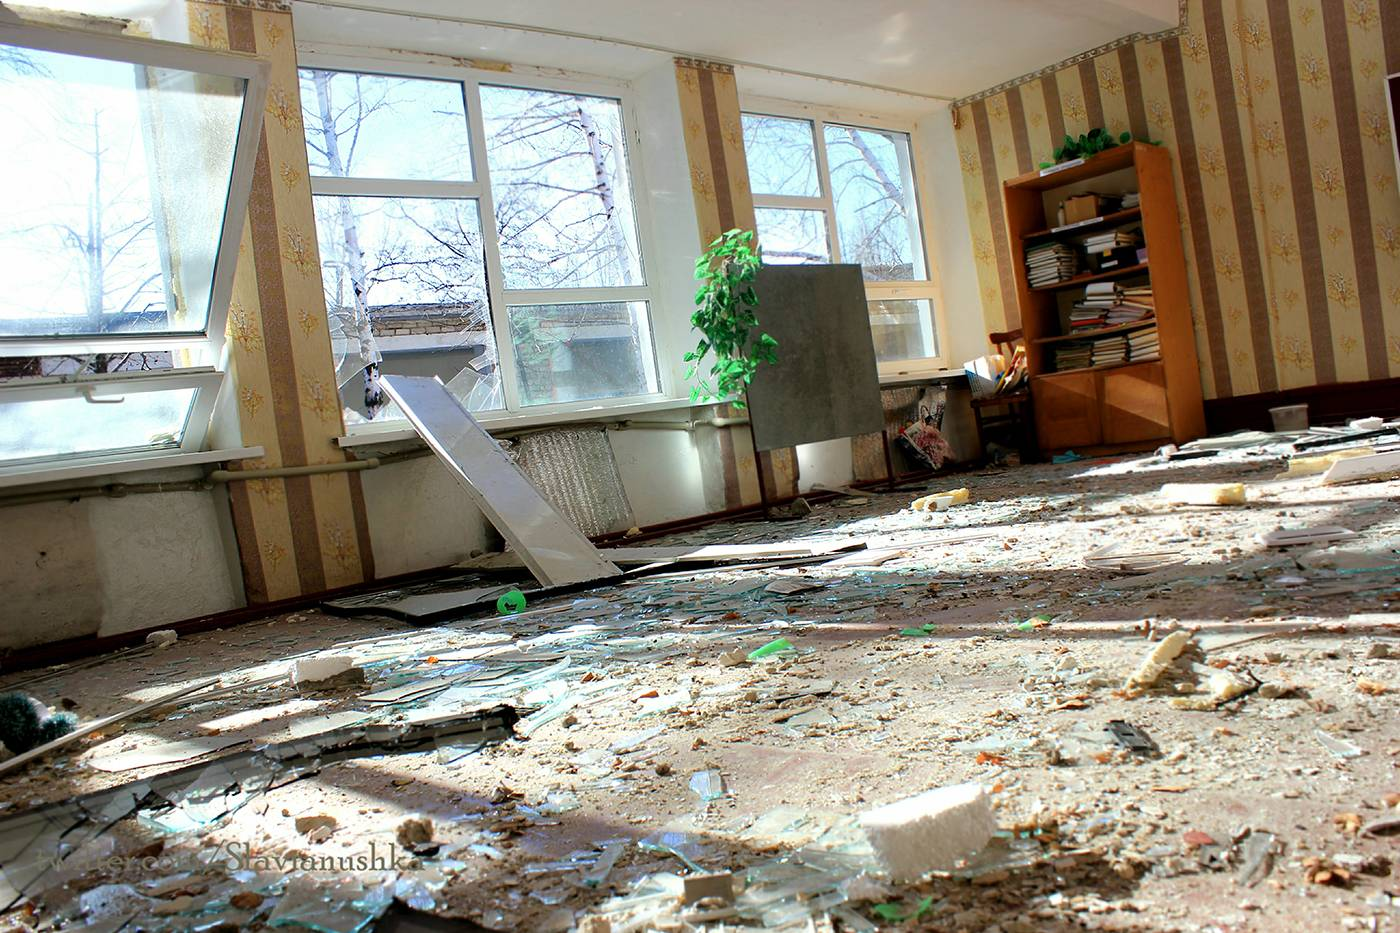 I entered the classroom where Vika and the other first form pupils used to study. Again, the usual scene: pieces of broken glass everywhere, destroyed windows, smashed furniture, holed walls… Books left in a bookcase…